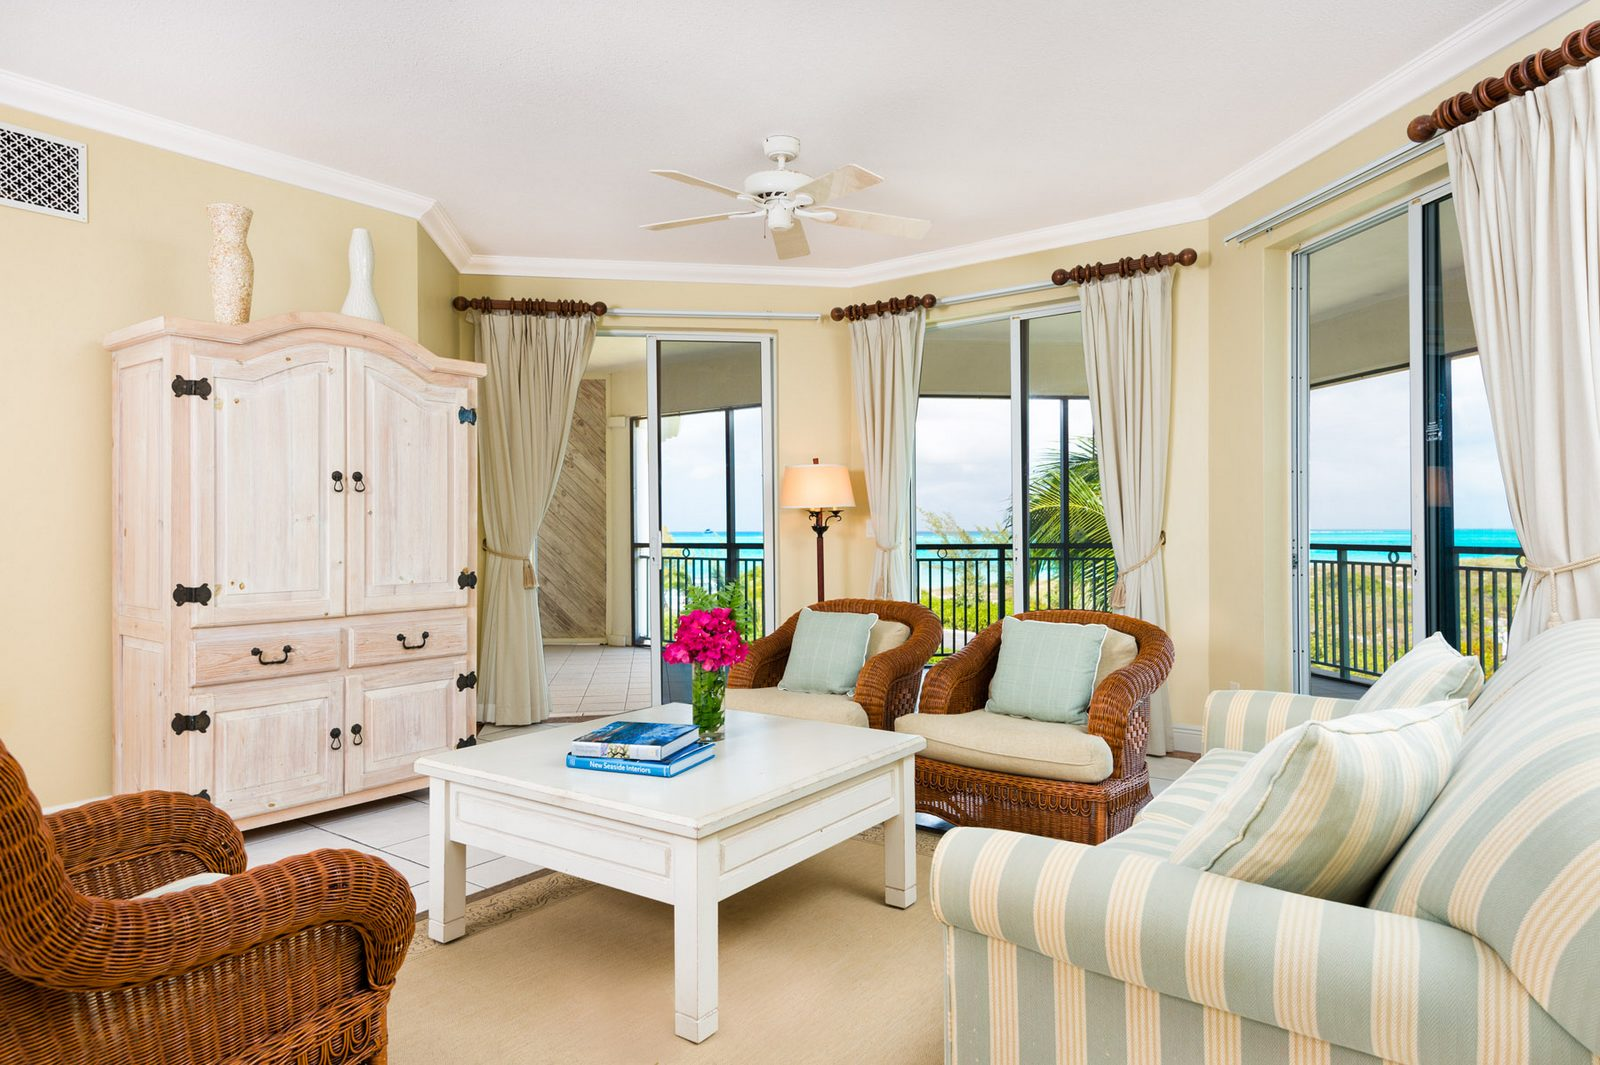 1 bedroom suites for sale grace bay turks and caicos 6 for Bedroom suites for sale